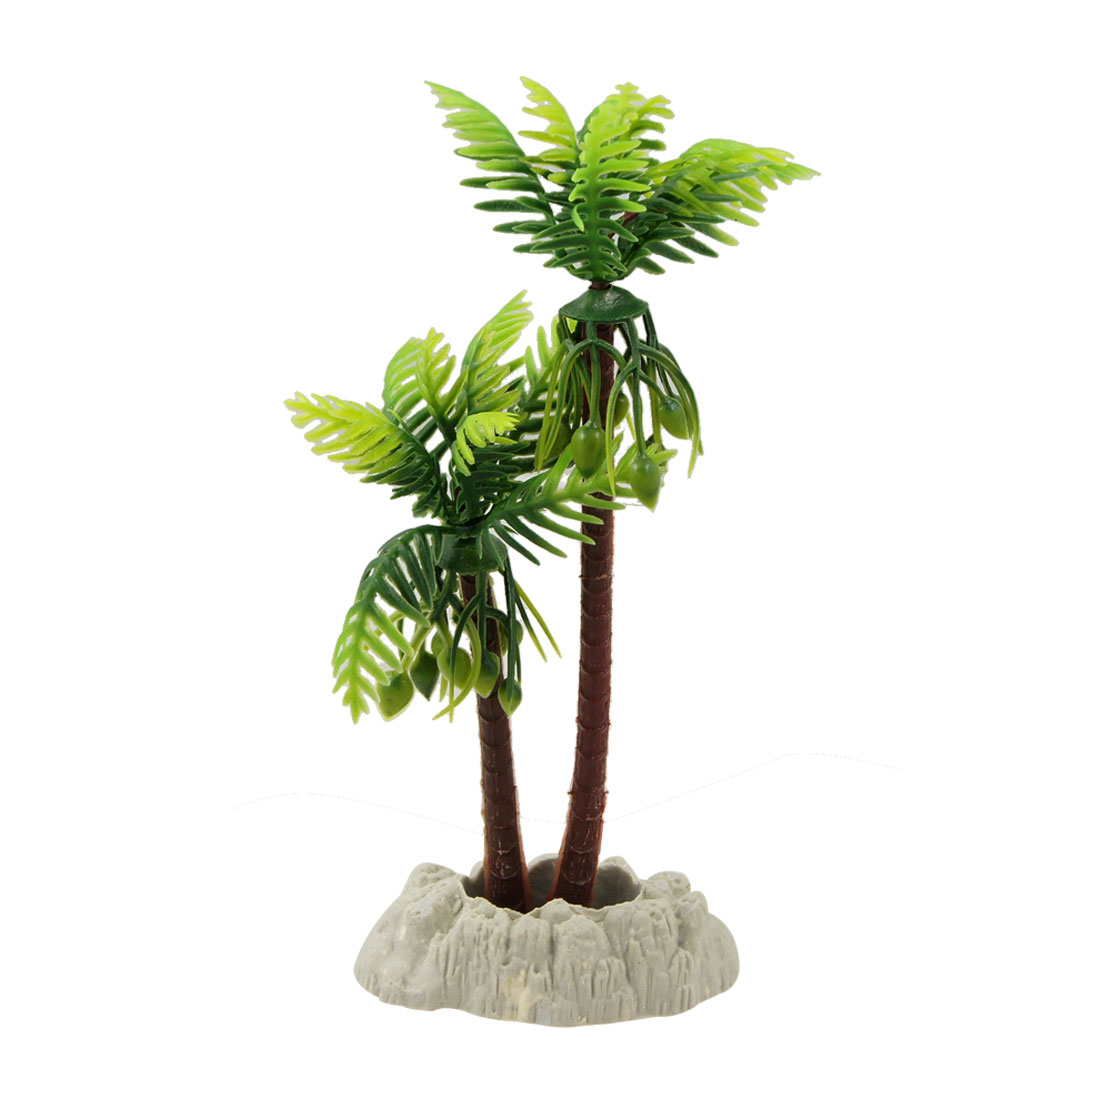 Aquarium Ornament Plastic Coconut Palm Plant Green